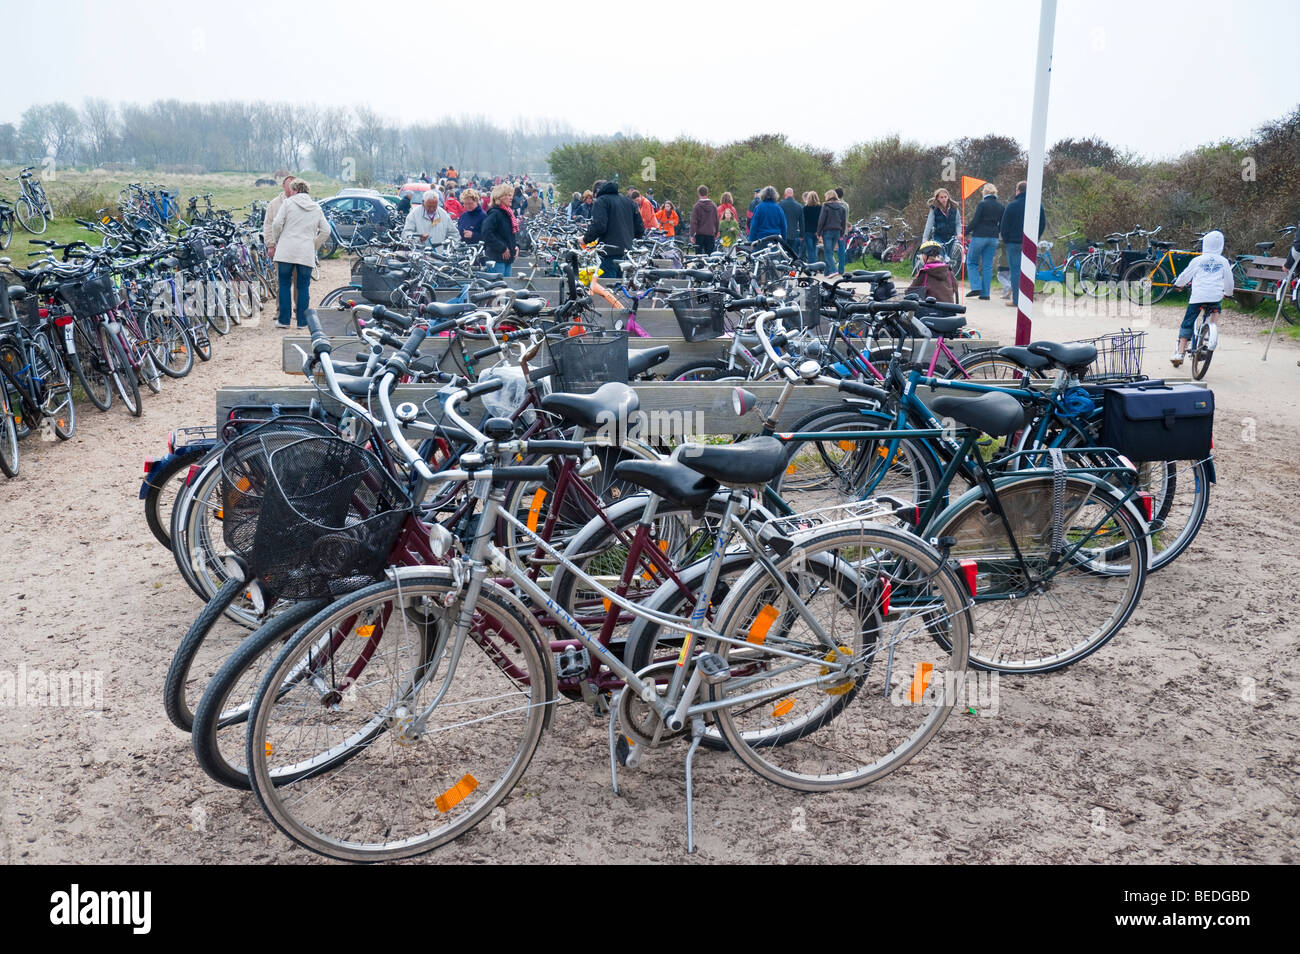 Bicycles stand close to the beach of the Dutch North Sea resort town of Renesse. - Stock Image